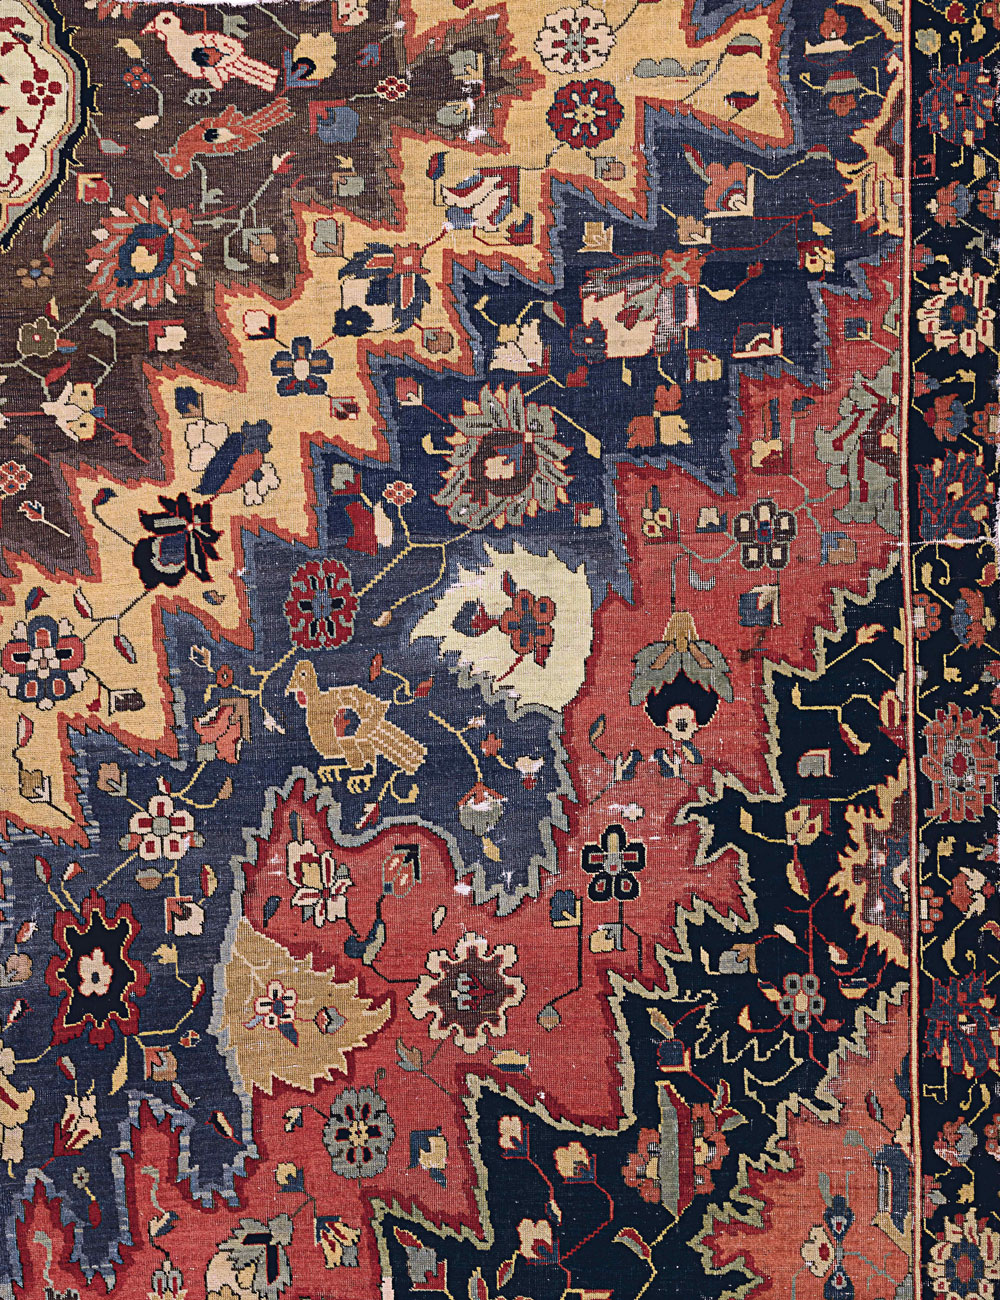 'Portuguese' carpet fragment